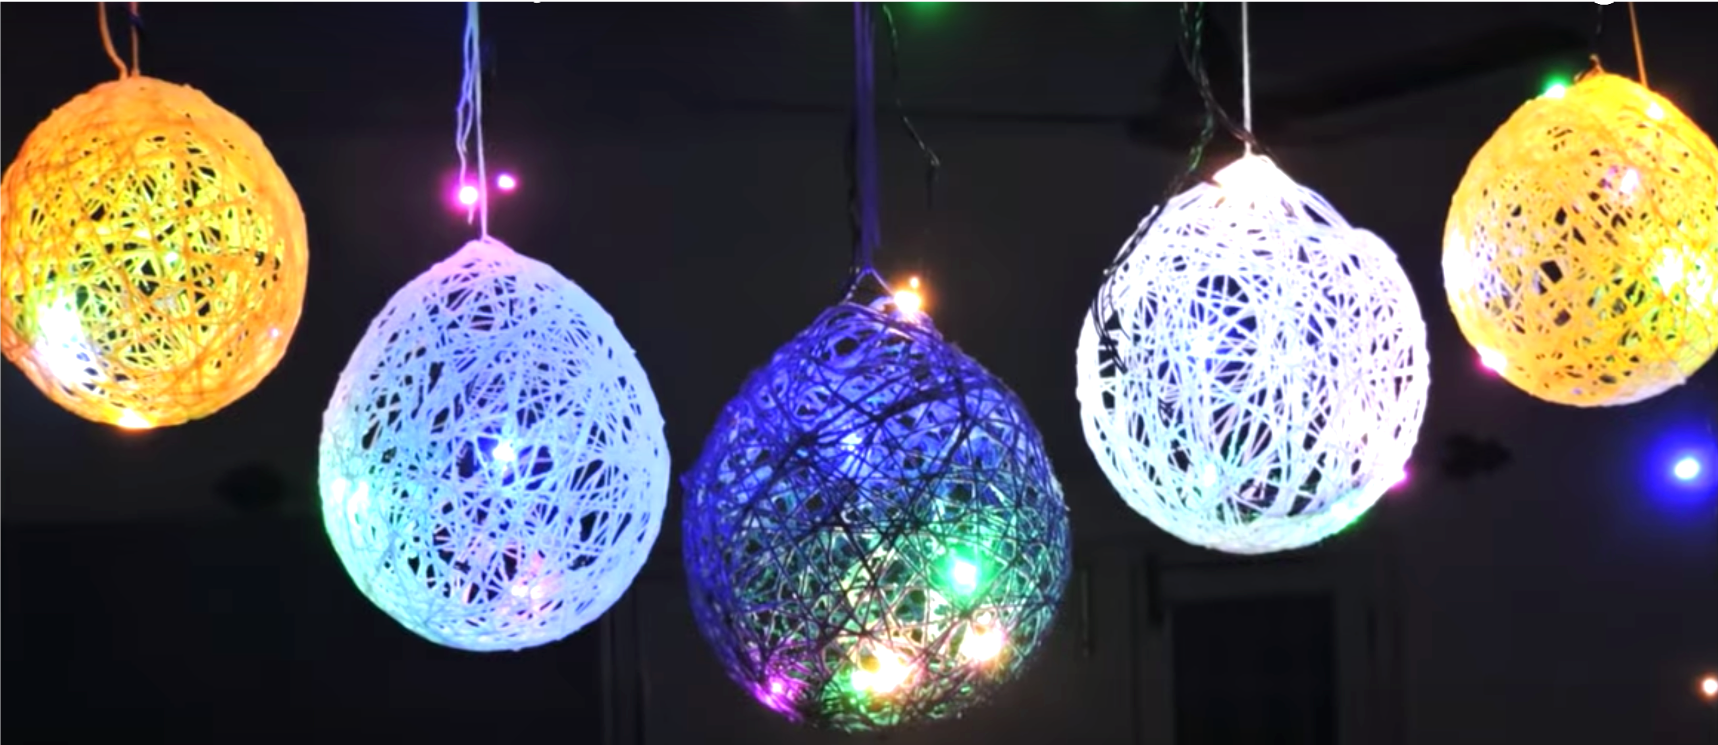 diy, DIY Project, Colorful Ball Decorative Lights, do it yourself, interior design, home decor, interior decor, wall decor, art, creativity, creative project, hobby, summer project, holiday project, art project, home decoration, interior decoration, home decoration ideas, simple DIY, easy DIY project, DIY project with material, DIY project idea, Hobby ideas, home art, art for home